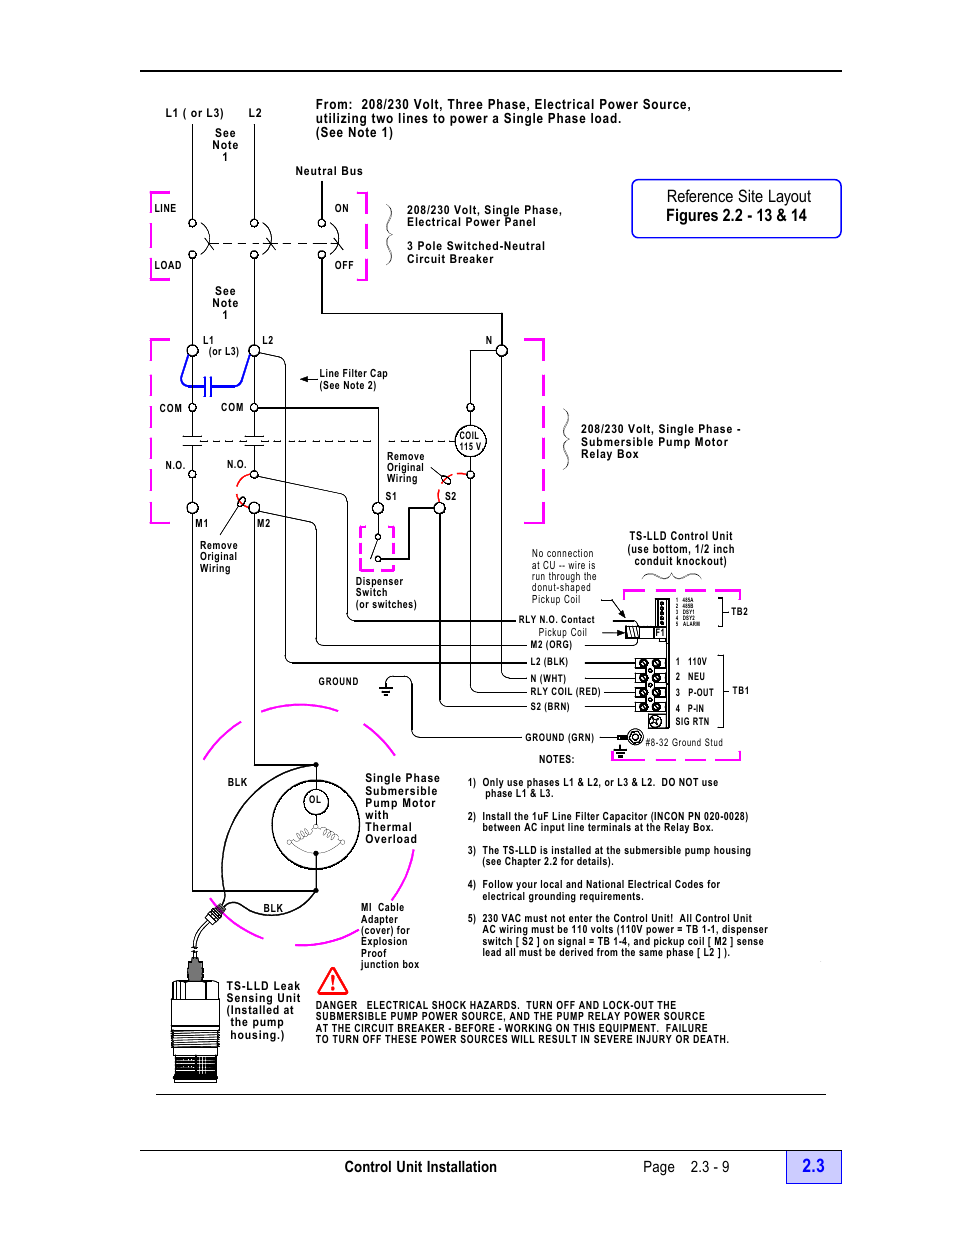 Interface Schematic 9 Reference Figure 23 8 Franklin Motor Wiring Diagram Control Unit Installation